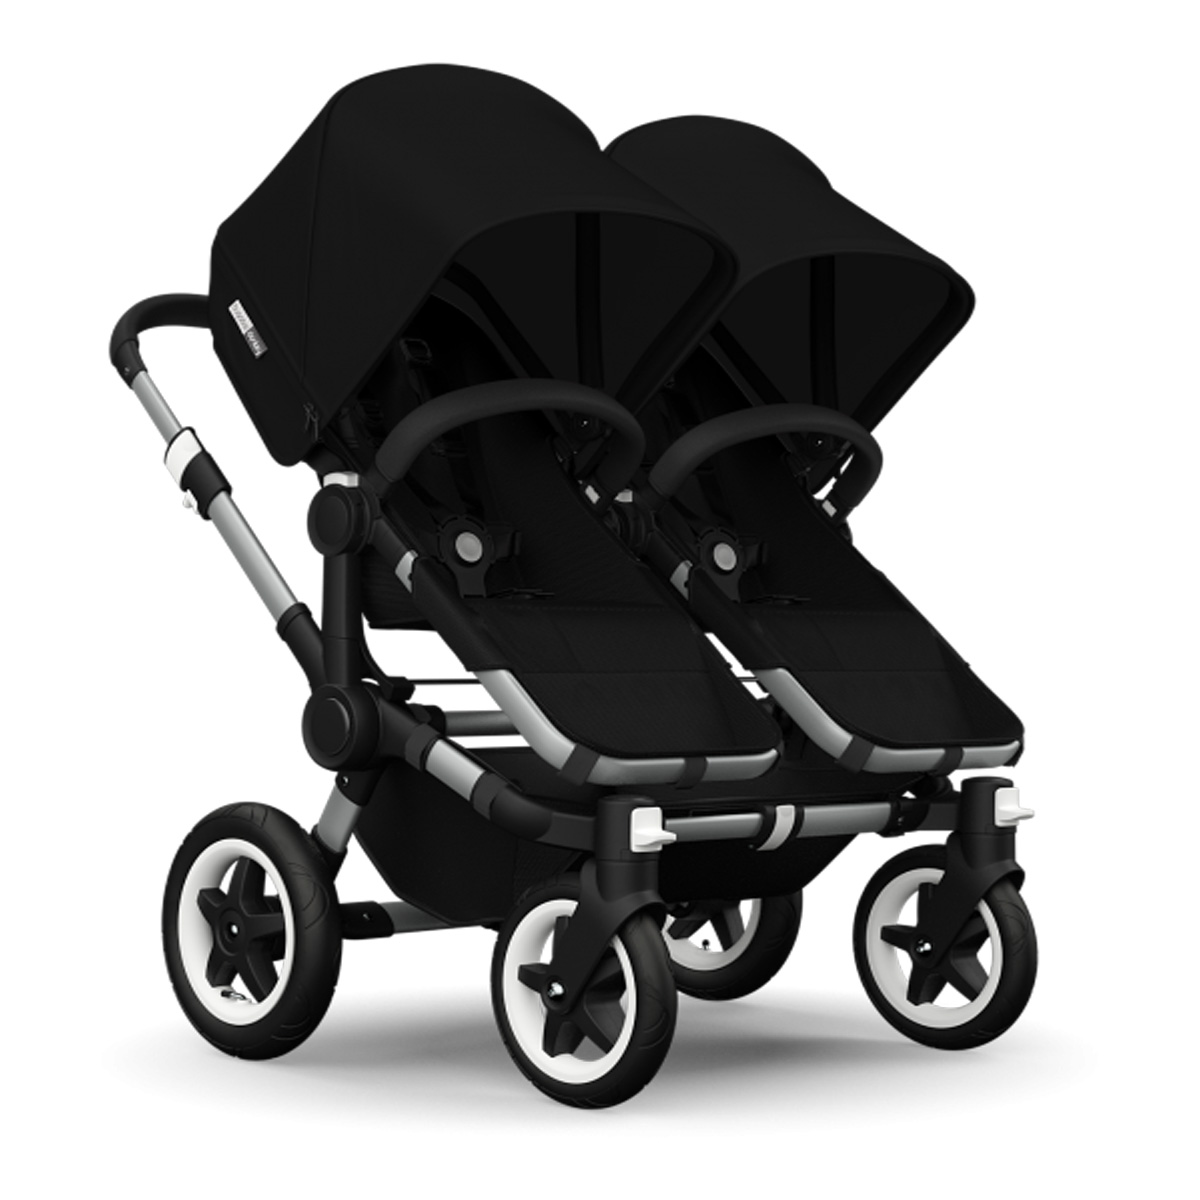 Clover H er as well Bugaboo Cameleon3 together with Bugaboo Donkey Duo Stroller Faux Leather Aluminum Black Grey Melange in addition 1227028476 in addition Watch. on bugaboo donkey stroller